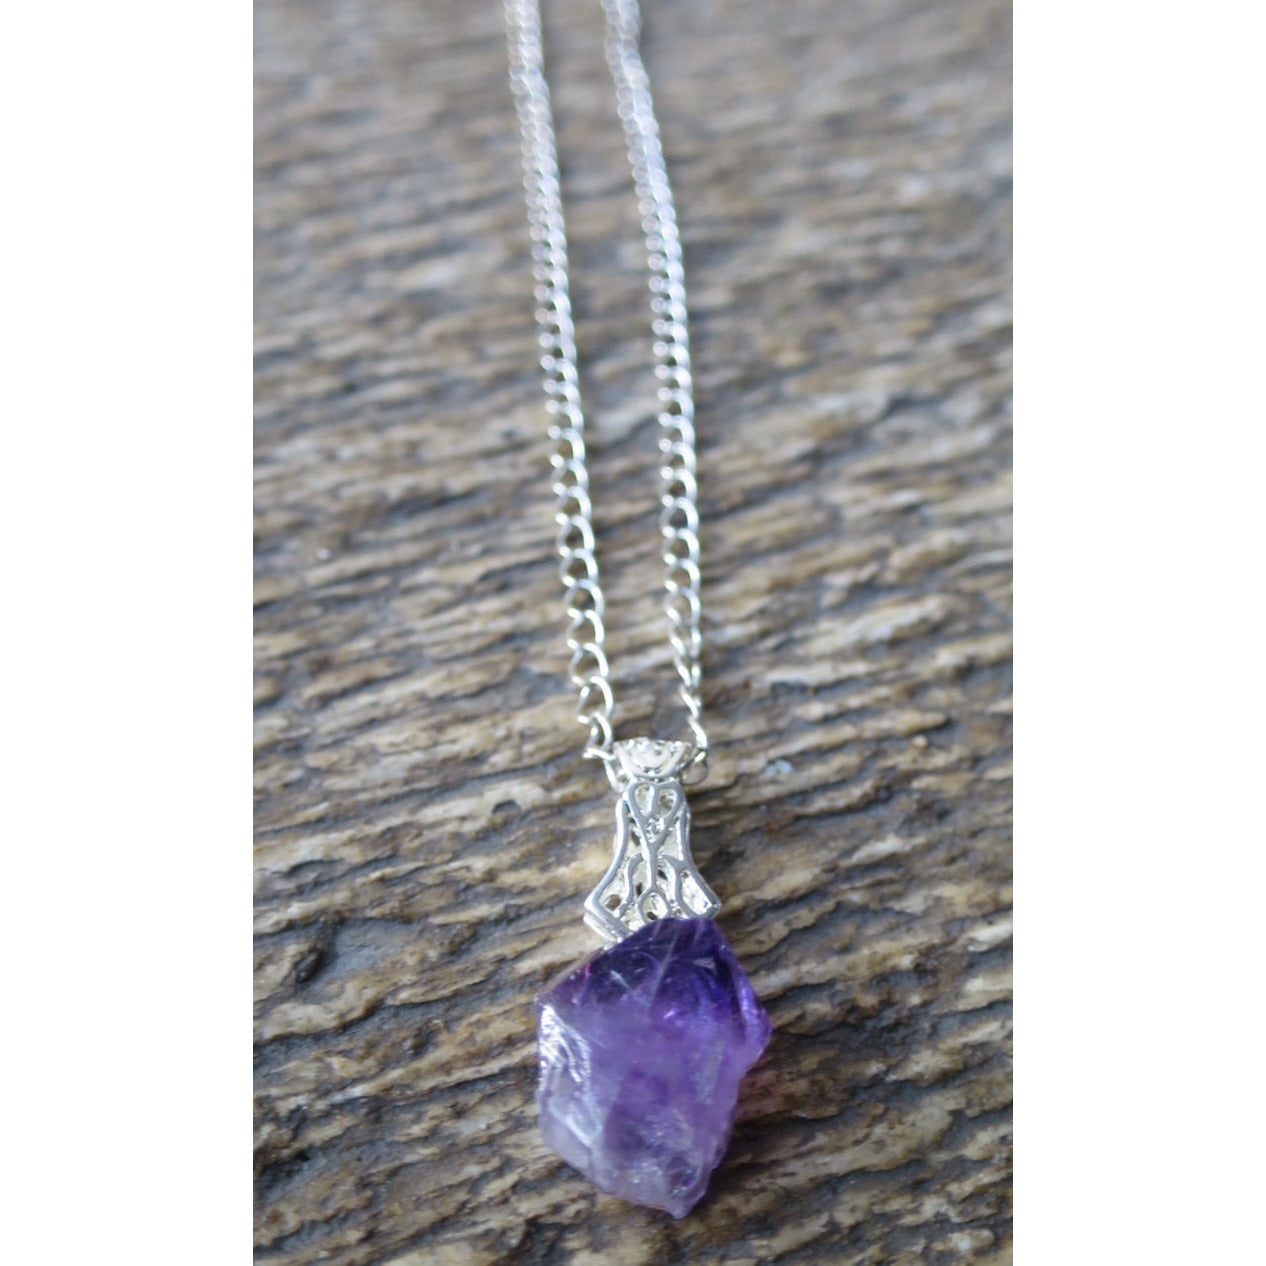 Amethyst Nugget Necklace - Pretty Princess Style